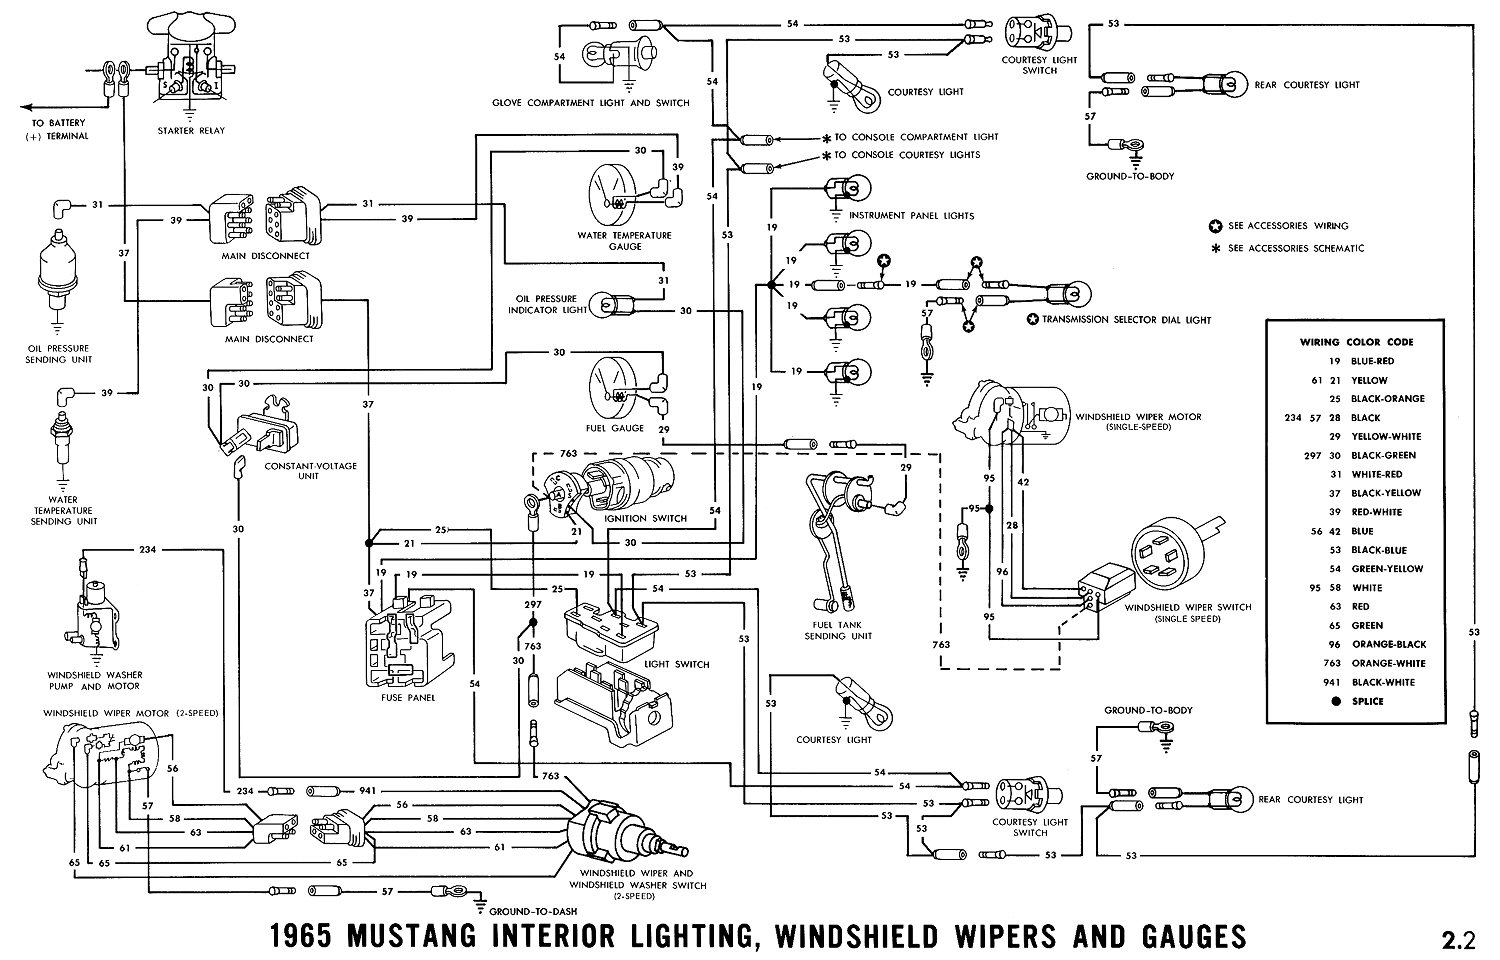 hight resolution of 1965 mustang wiring diagrams average joe restoration basic ignition wiring diagram 1965 mustang